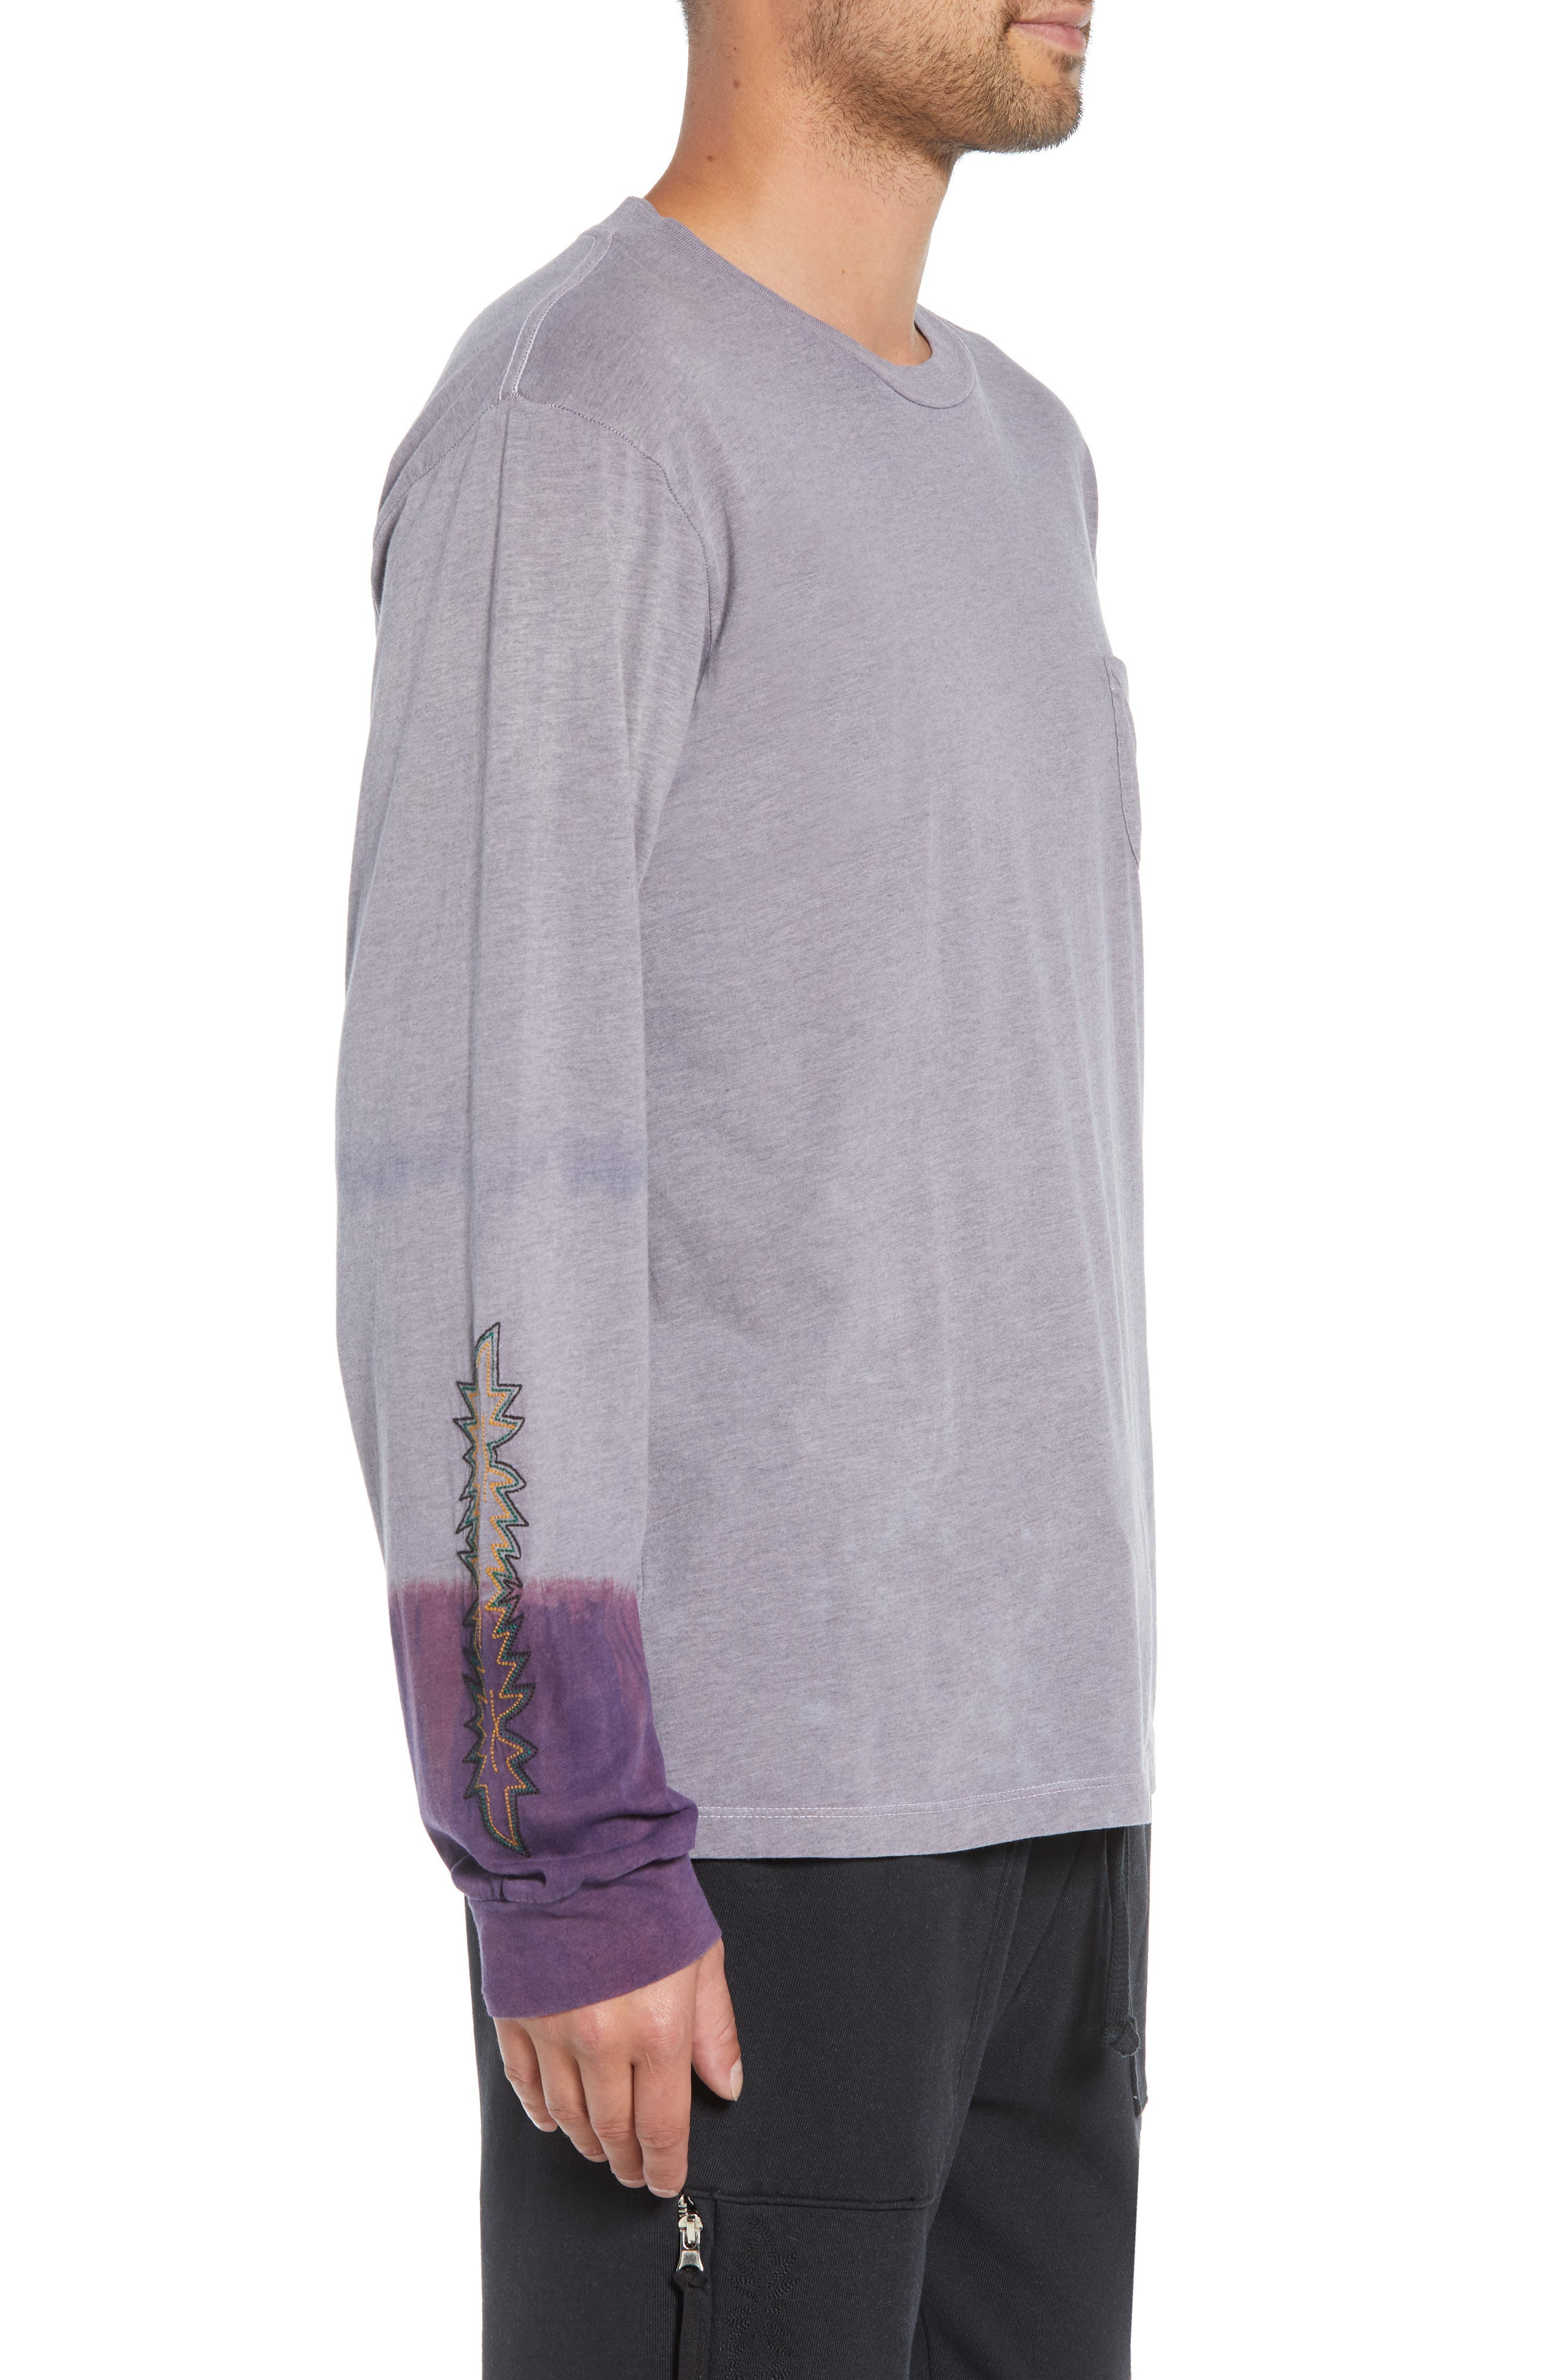 Kojak Pocket T-Shirt,                             Alternate thumbnail 3, color,                             PURPLE ASH